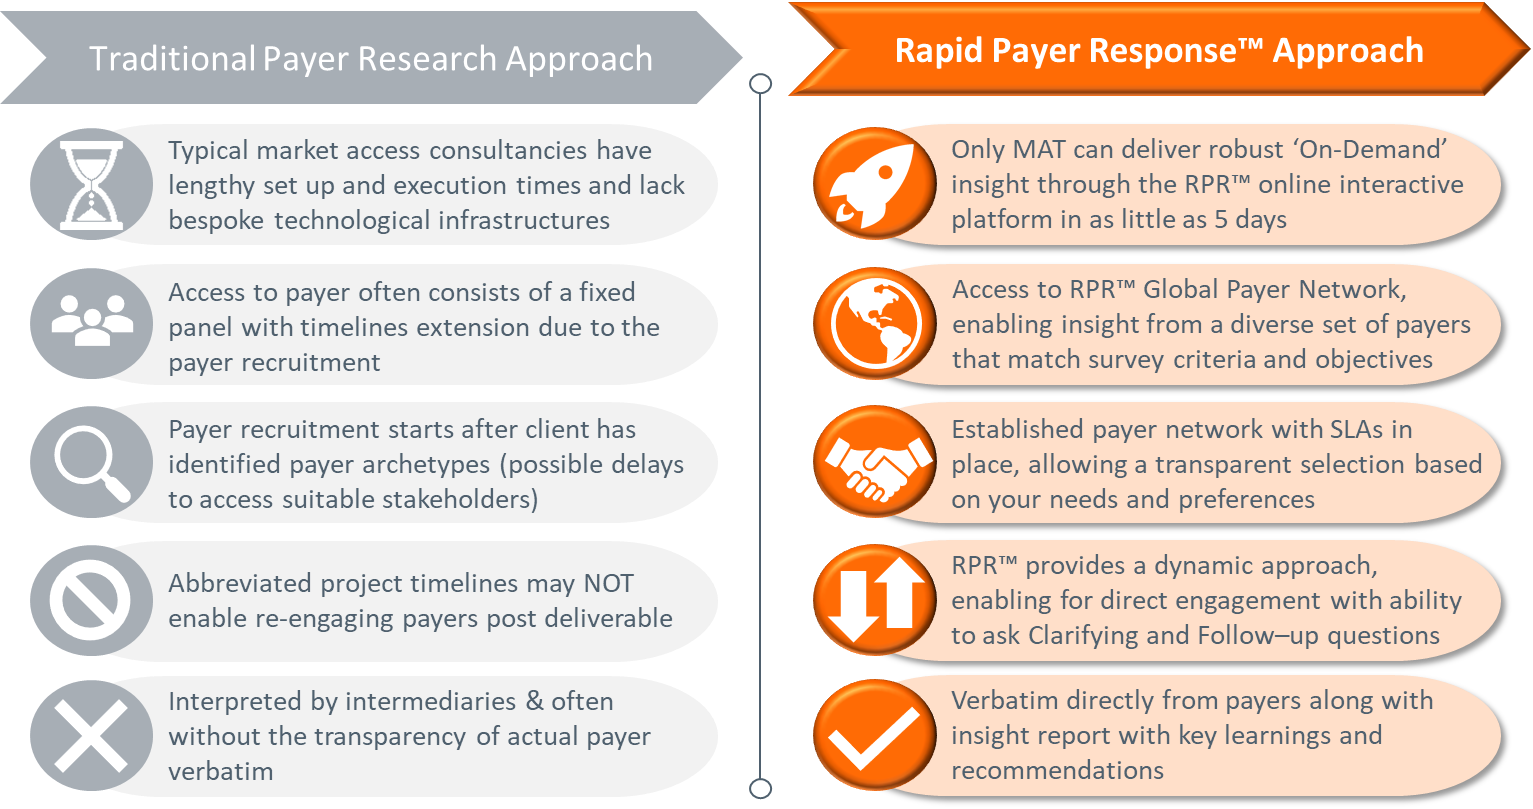 The RPR™ Approach    April 1, 2019   MAT is changing how global payer inisght is secured by delivering feedback in as little as 5 days!  […]